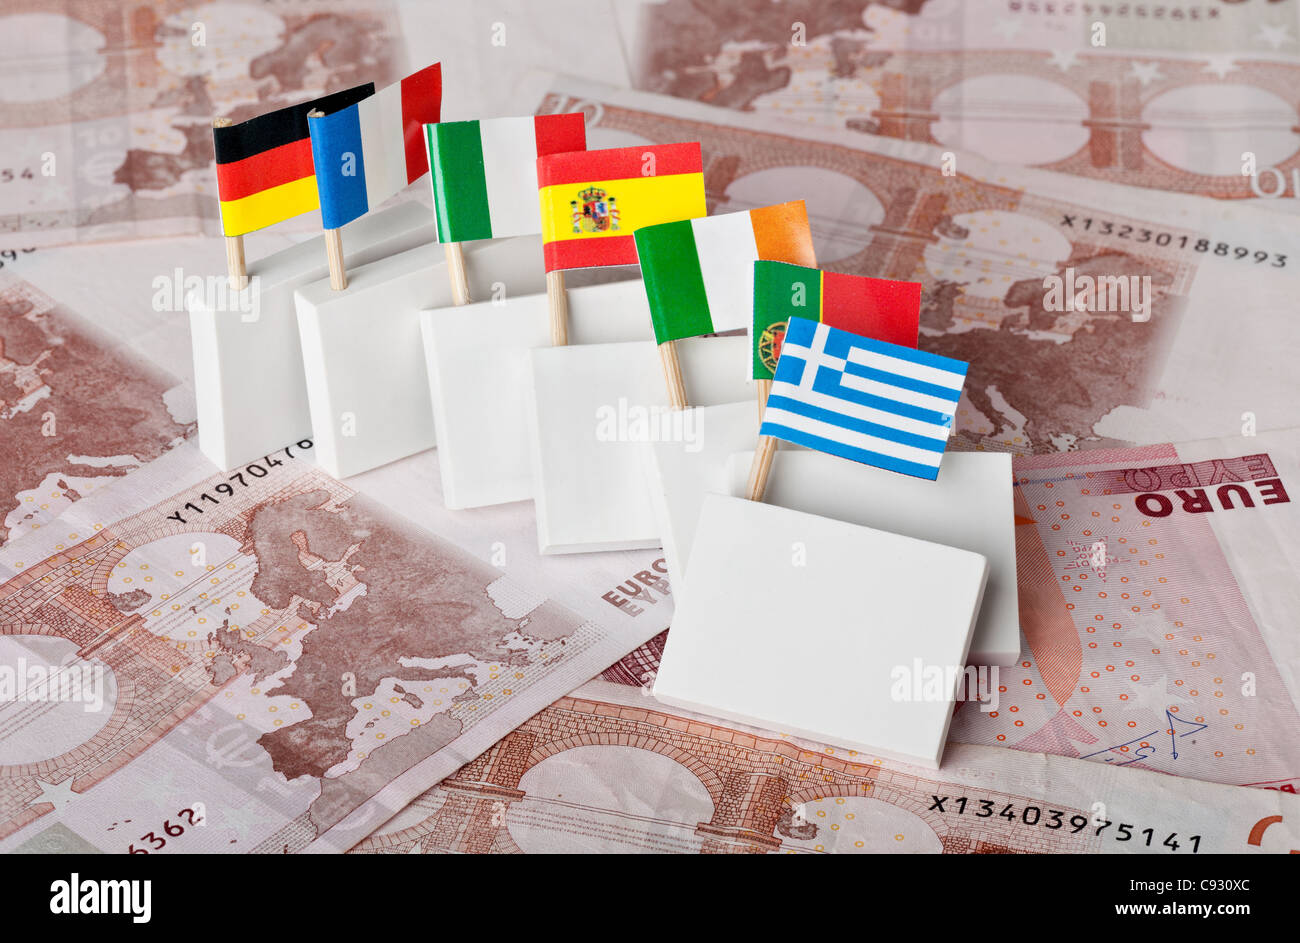 Greek sovereign debt crisis triggering a domino effect on other Euro countries - Stock Image